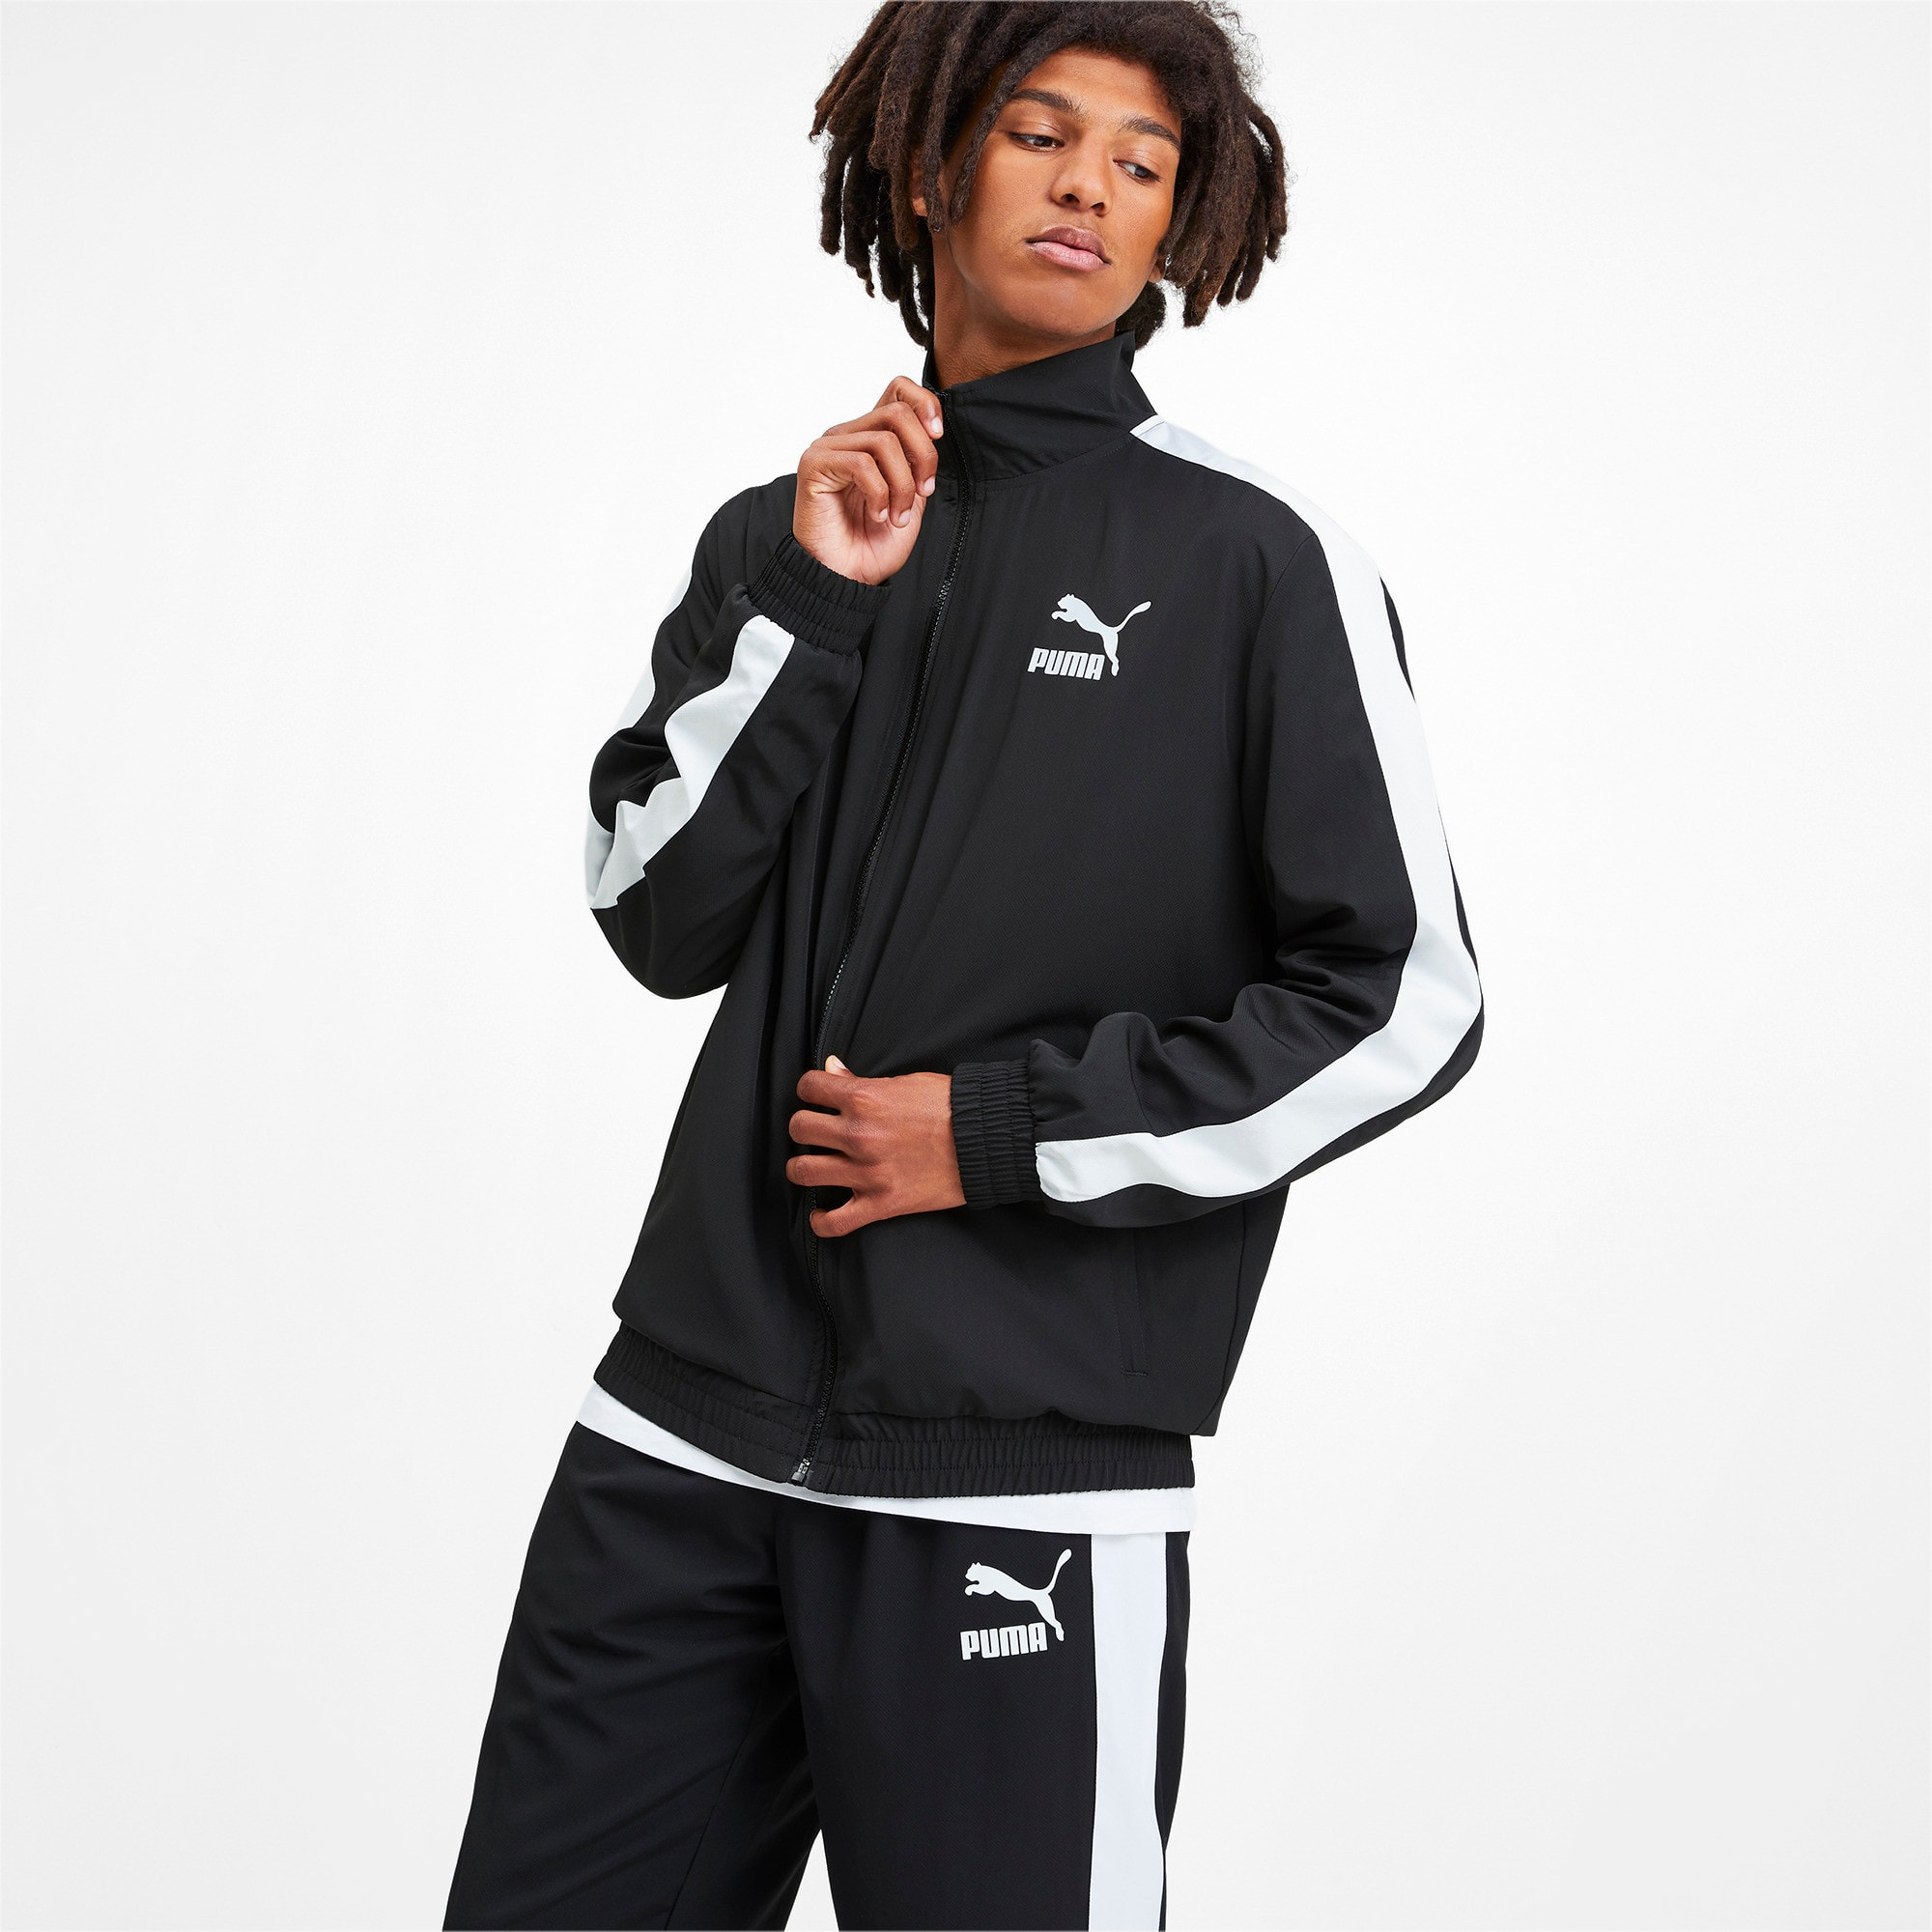 Thumbnail 2 of Iconic T7 Men's Woven Track Jacket, Puma Black, medium